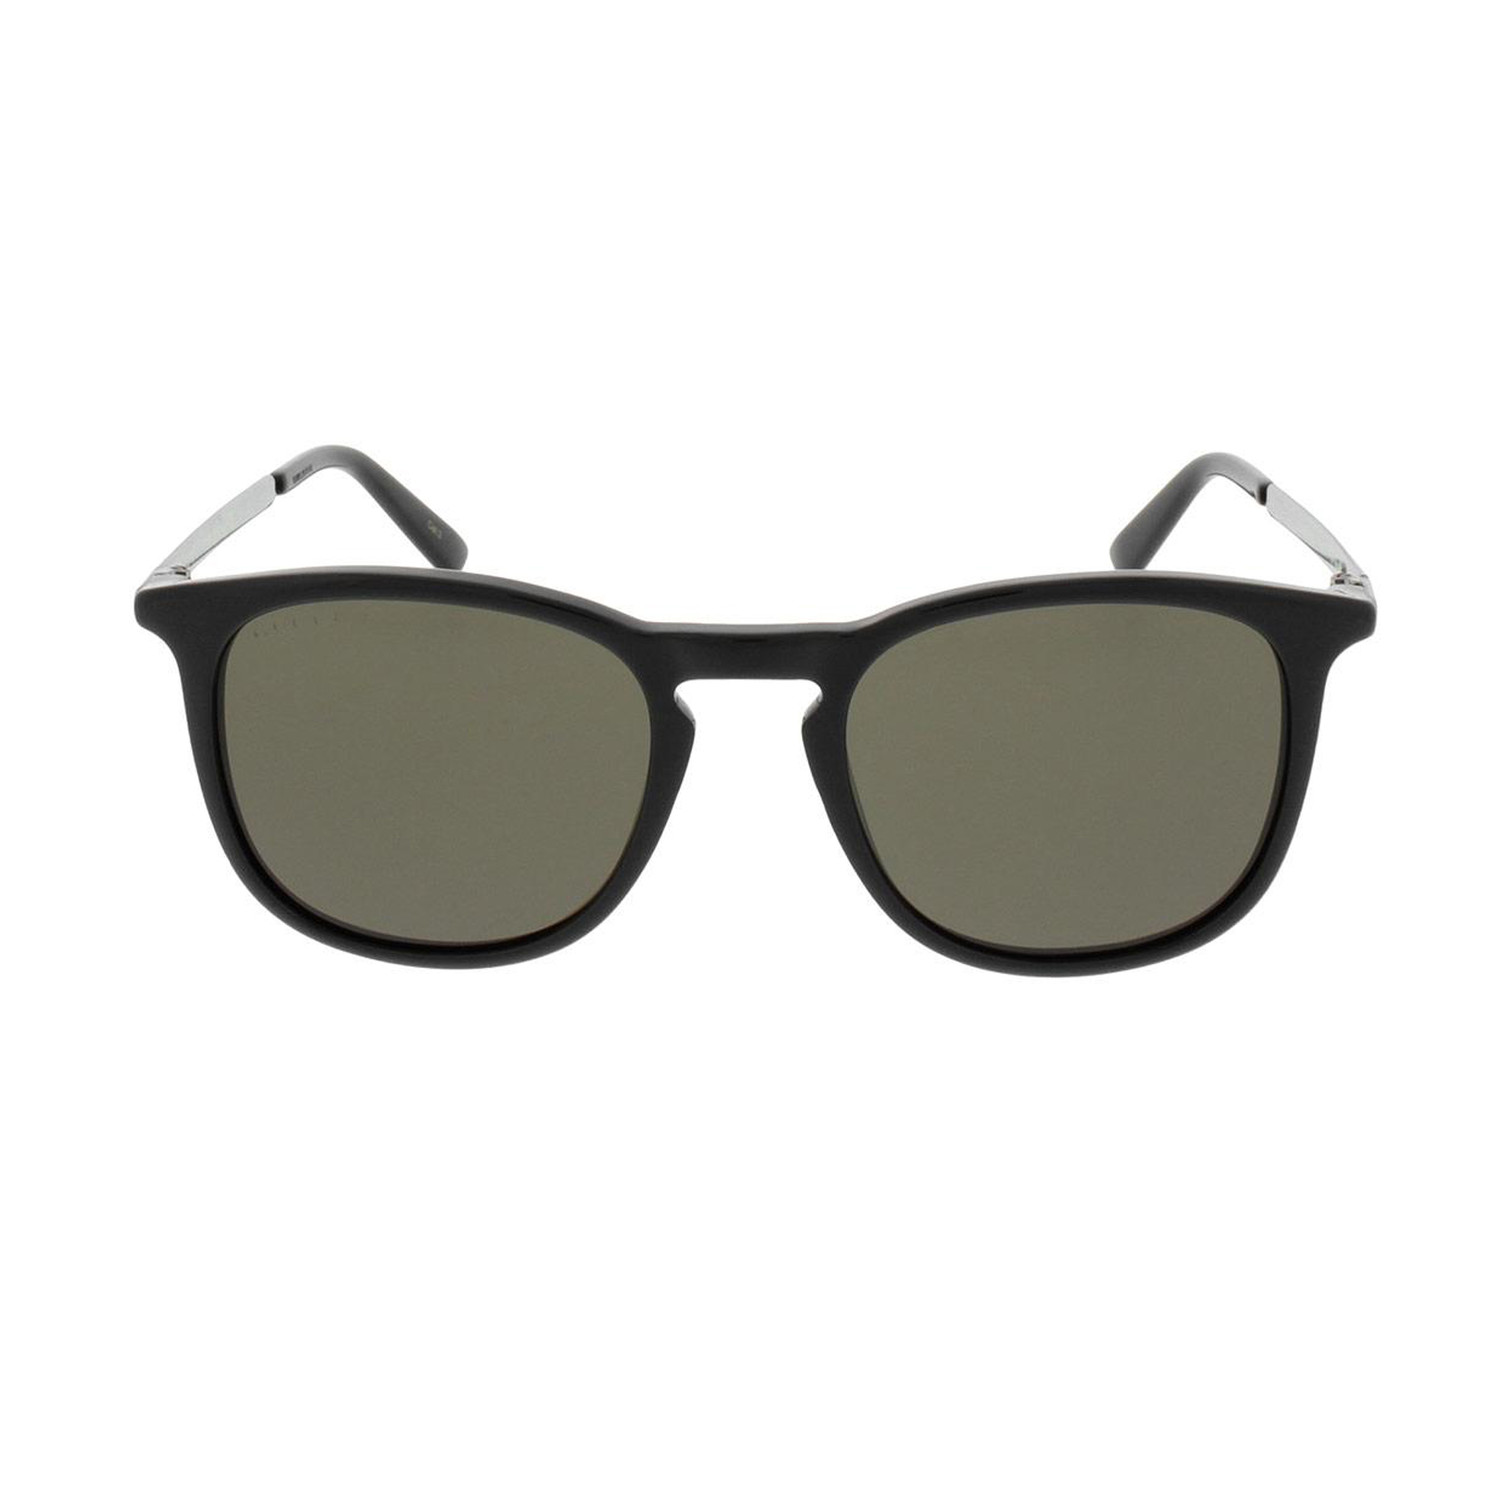 c5dd5c9b676d0 Unisex GG0136S-001-51 Sunglasses    Black + Brown - Gucci - Touch of ...